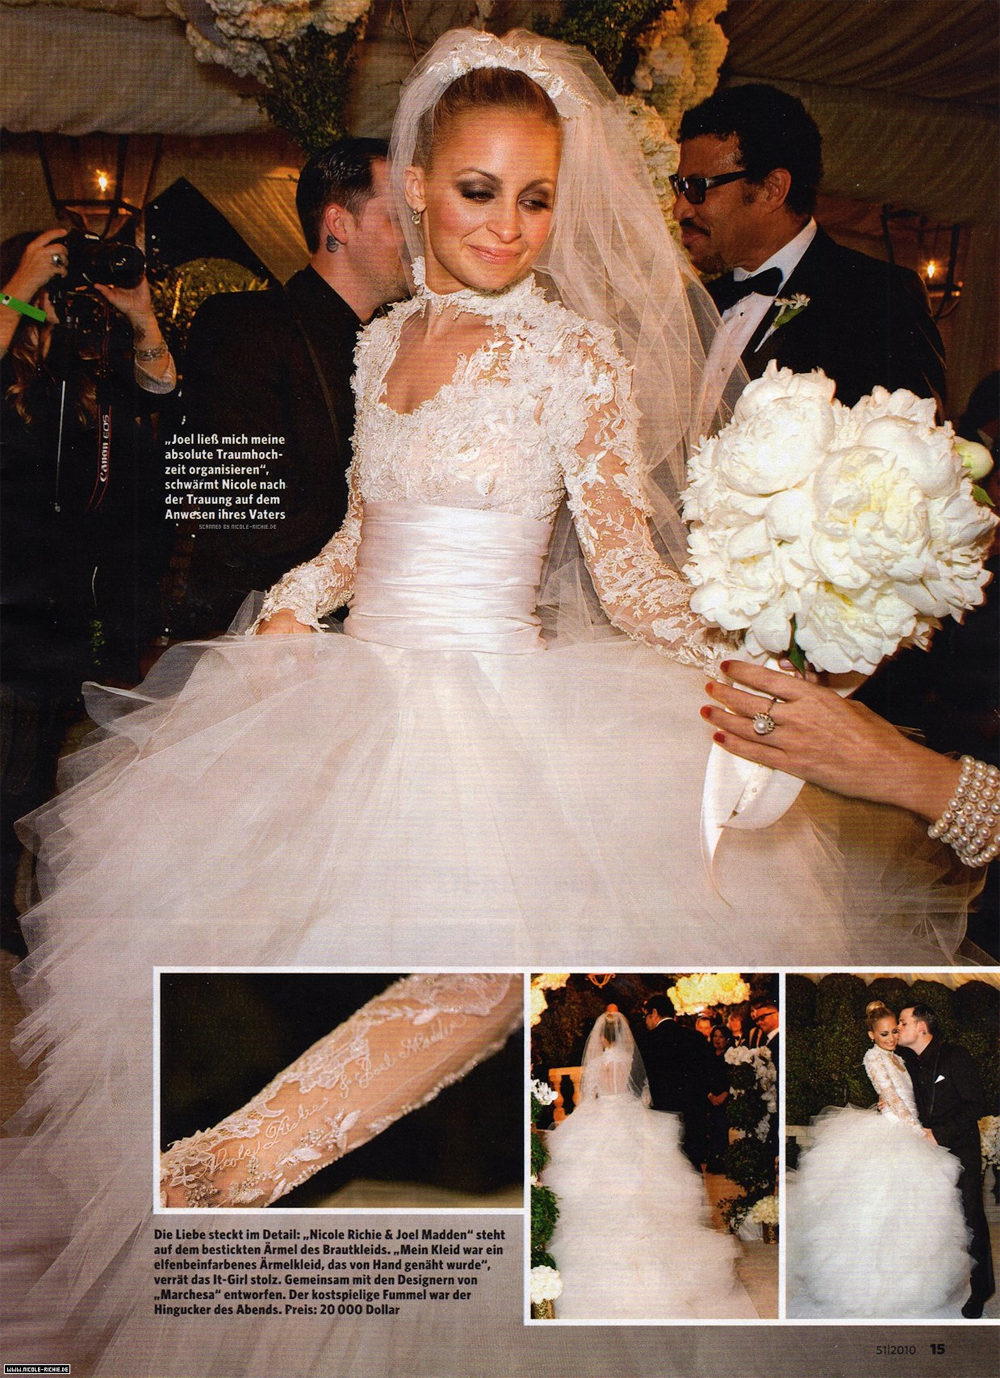 Nicole Richie Wedding Pictures.jpg